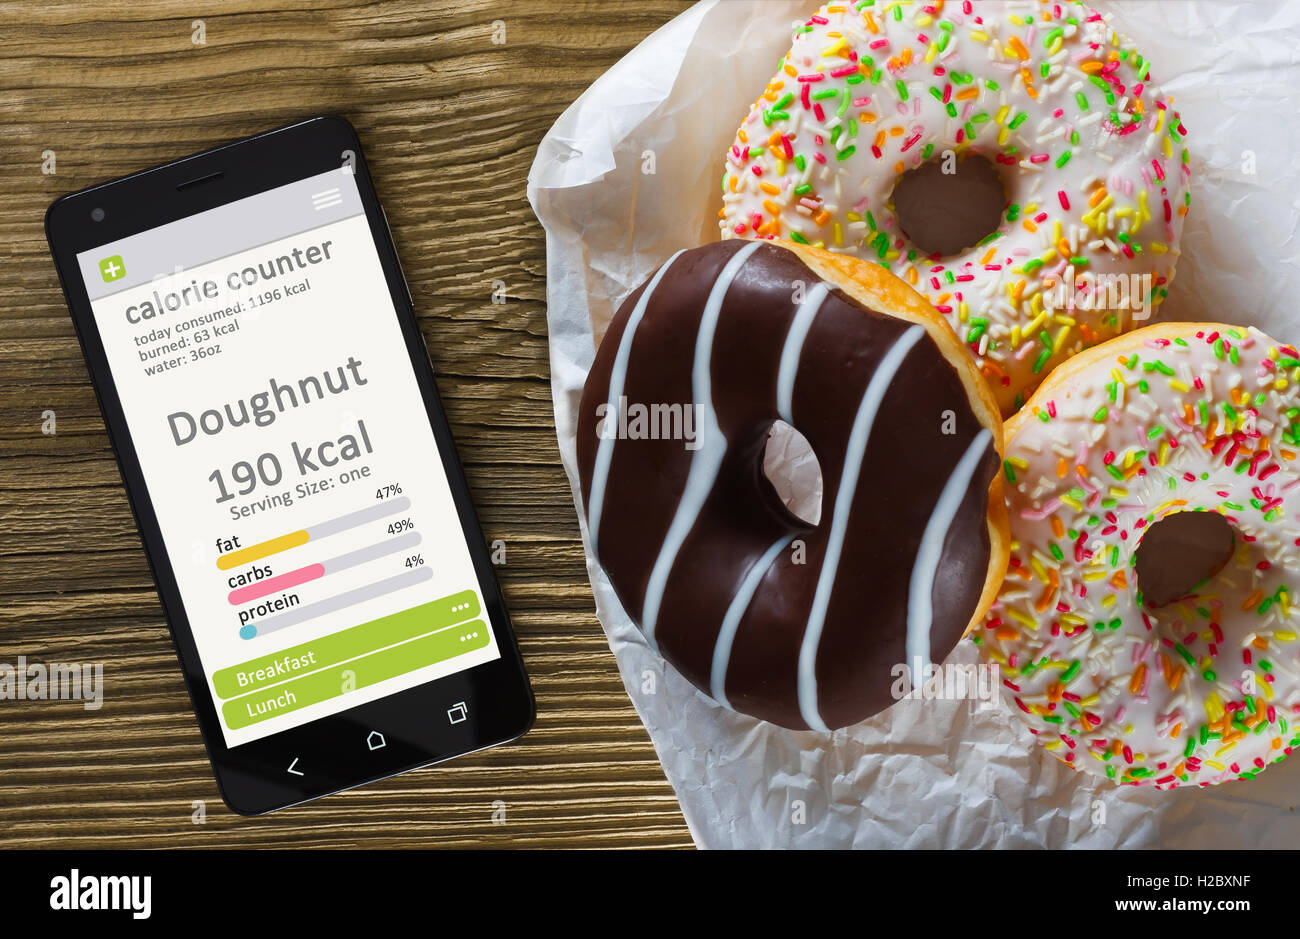 Calorie counter concept - mobile phone with calorie counter app on the screen and doughnuts. Wooden table as background - Stock Image